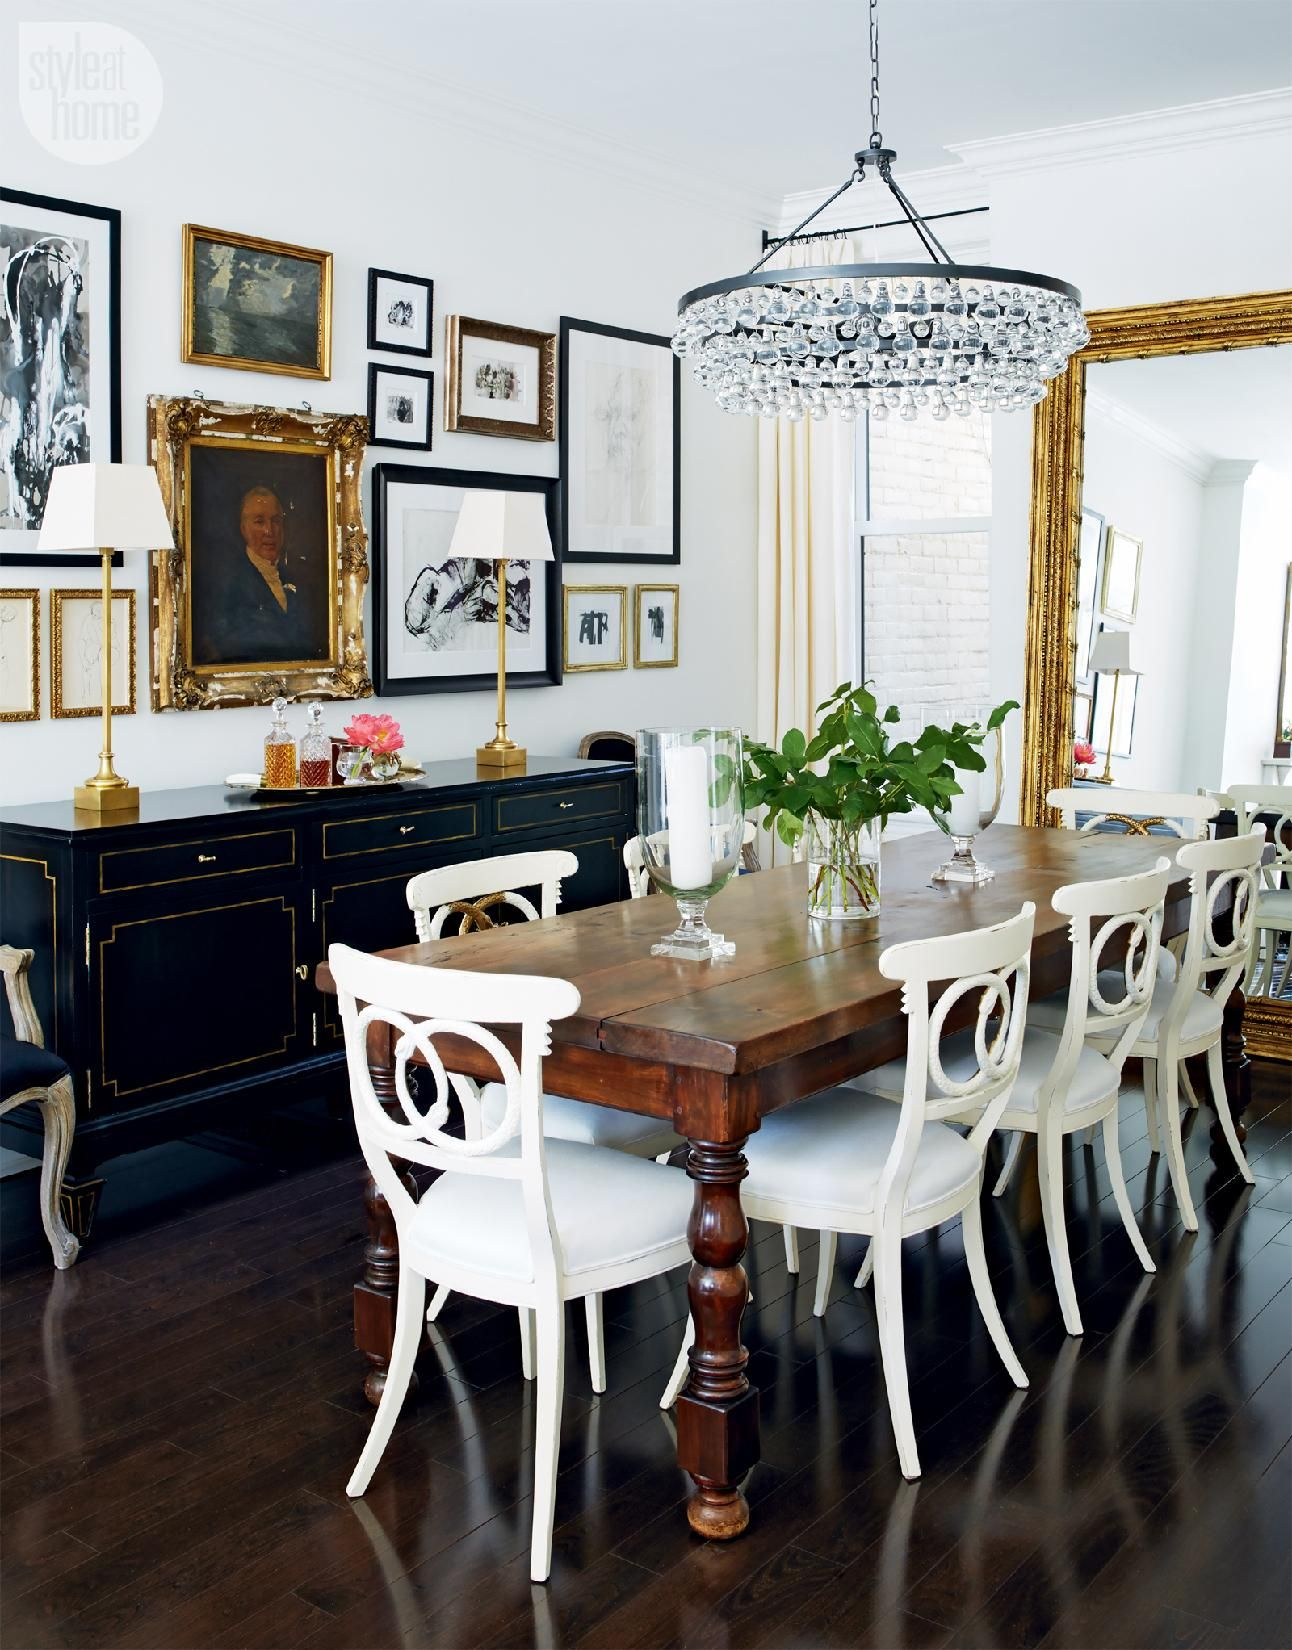 house tour: charming victorian rowhouse | wall galleries, wood